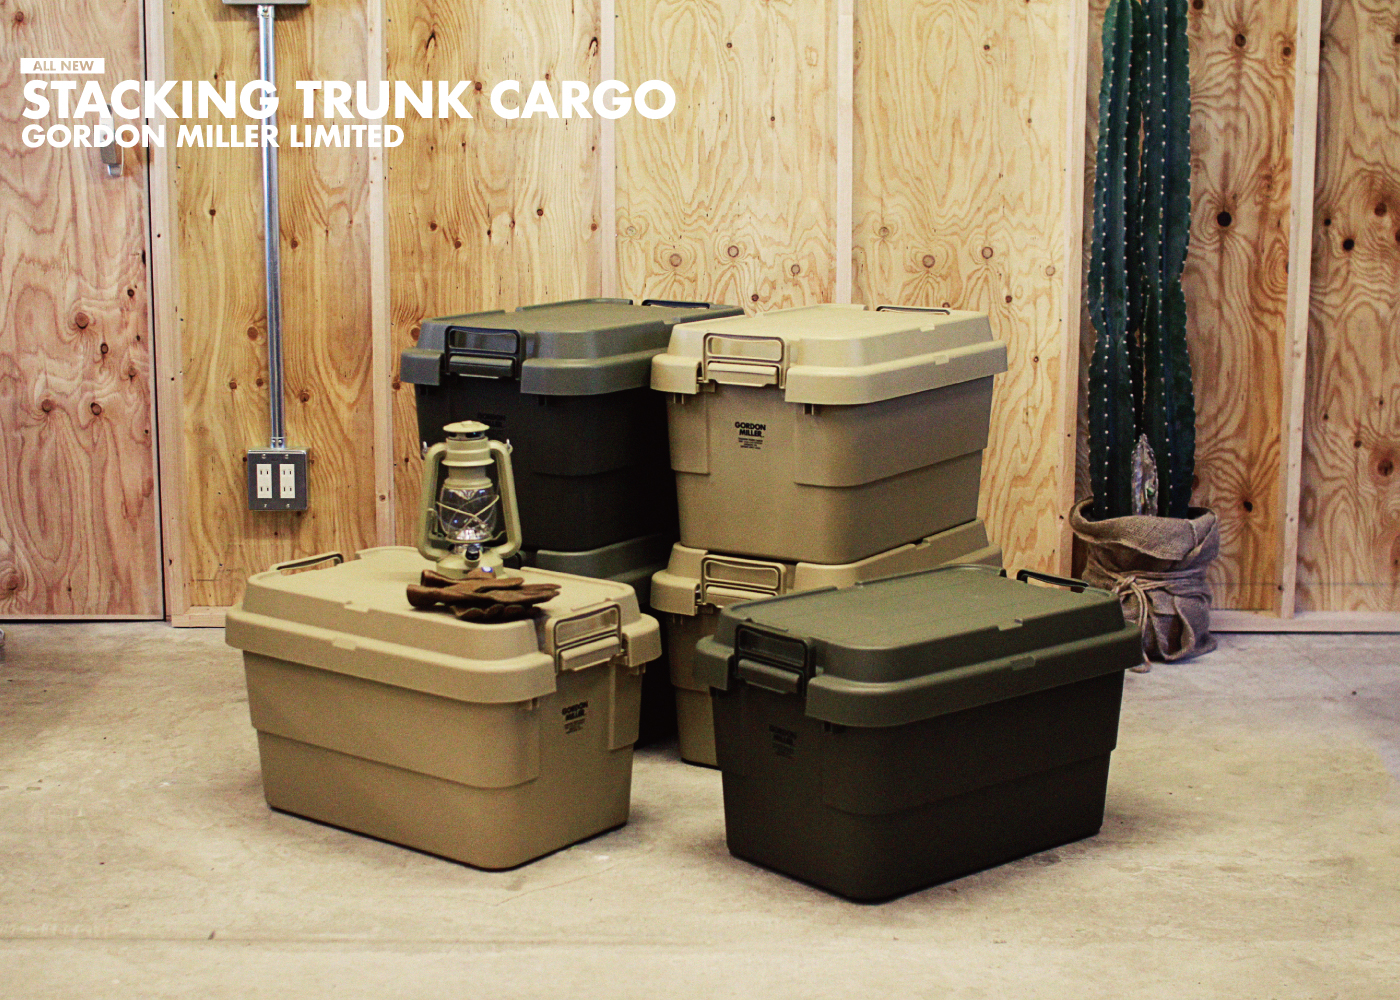 STACKING TRUNK CARGO | スタッキングトランクカーゴ